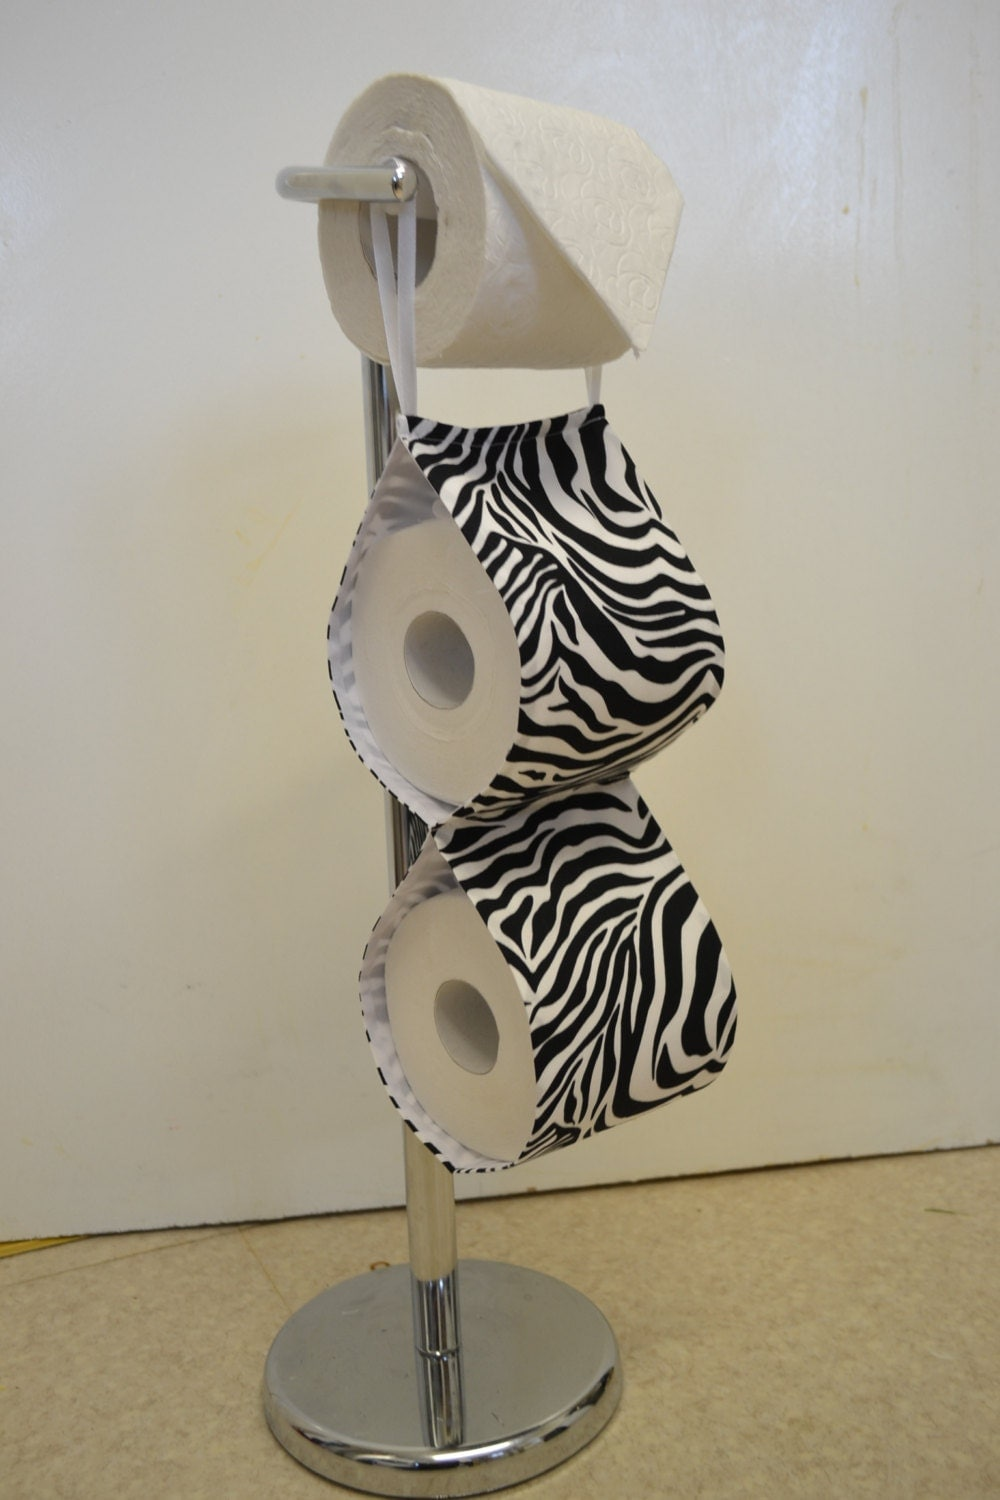 Fabric Decorative Toilet Paper Holder Zebra Handmade